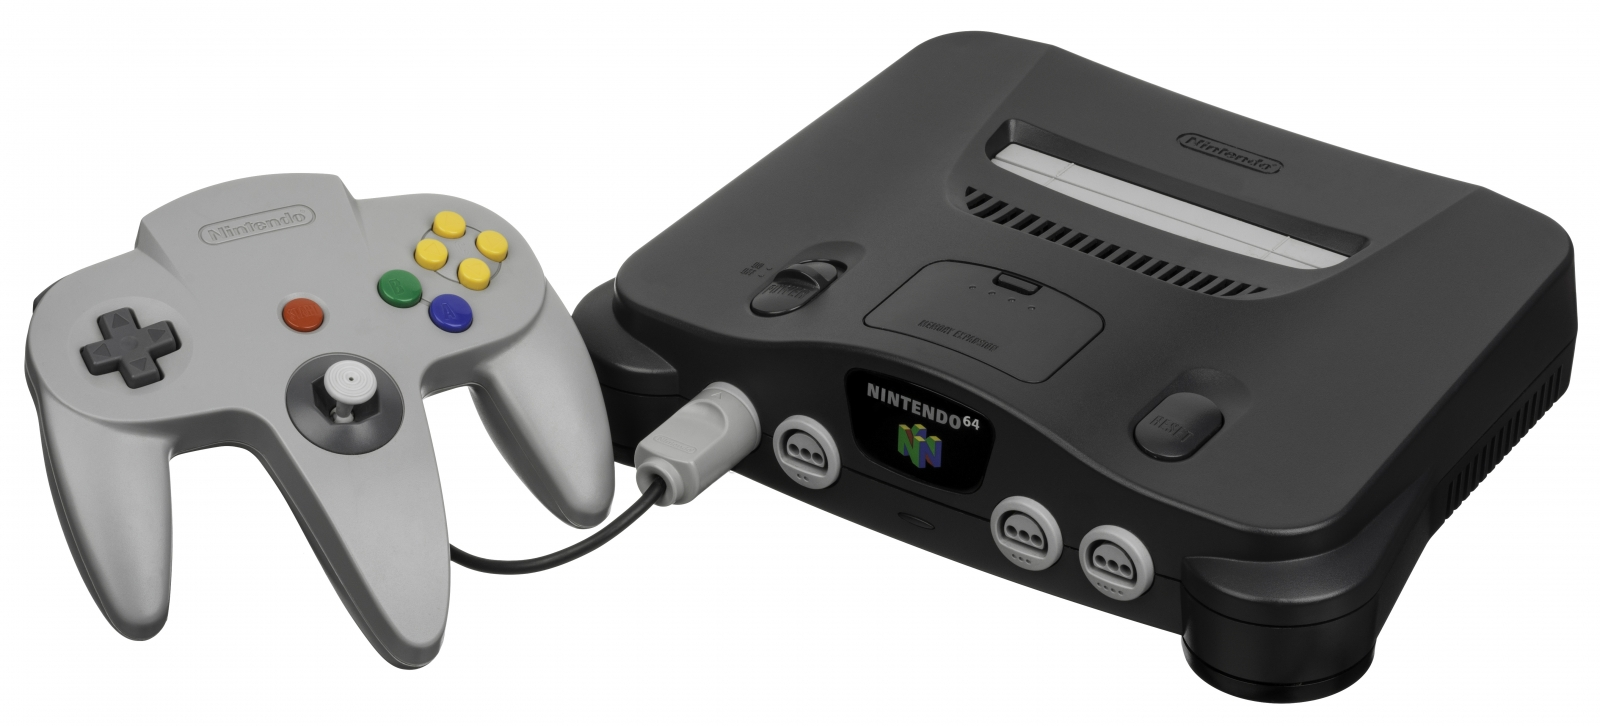 Esa Preserving Old Video Game Consoles In Museums Is Tantamount To